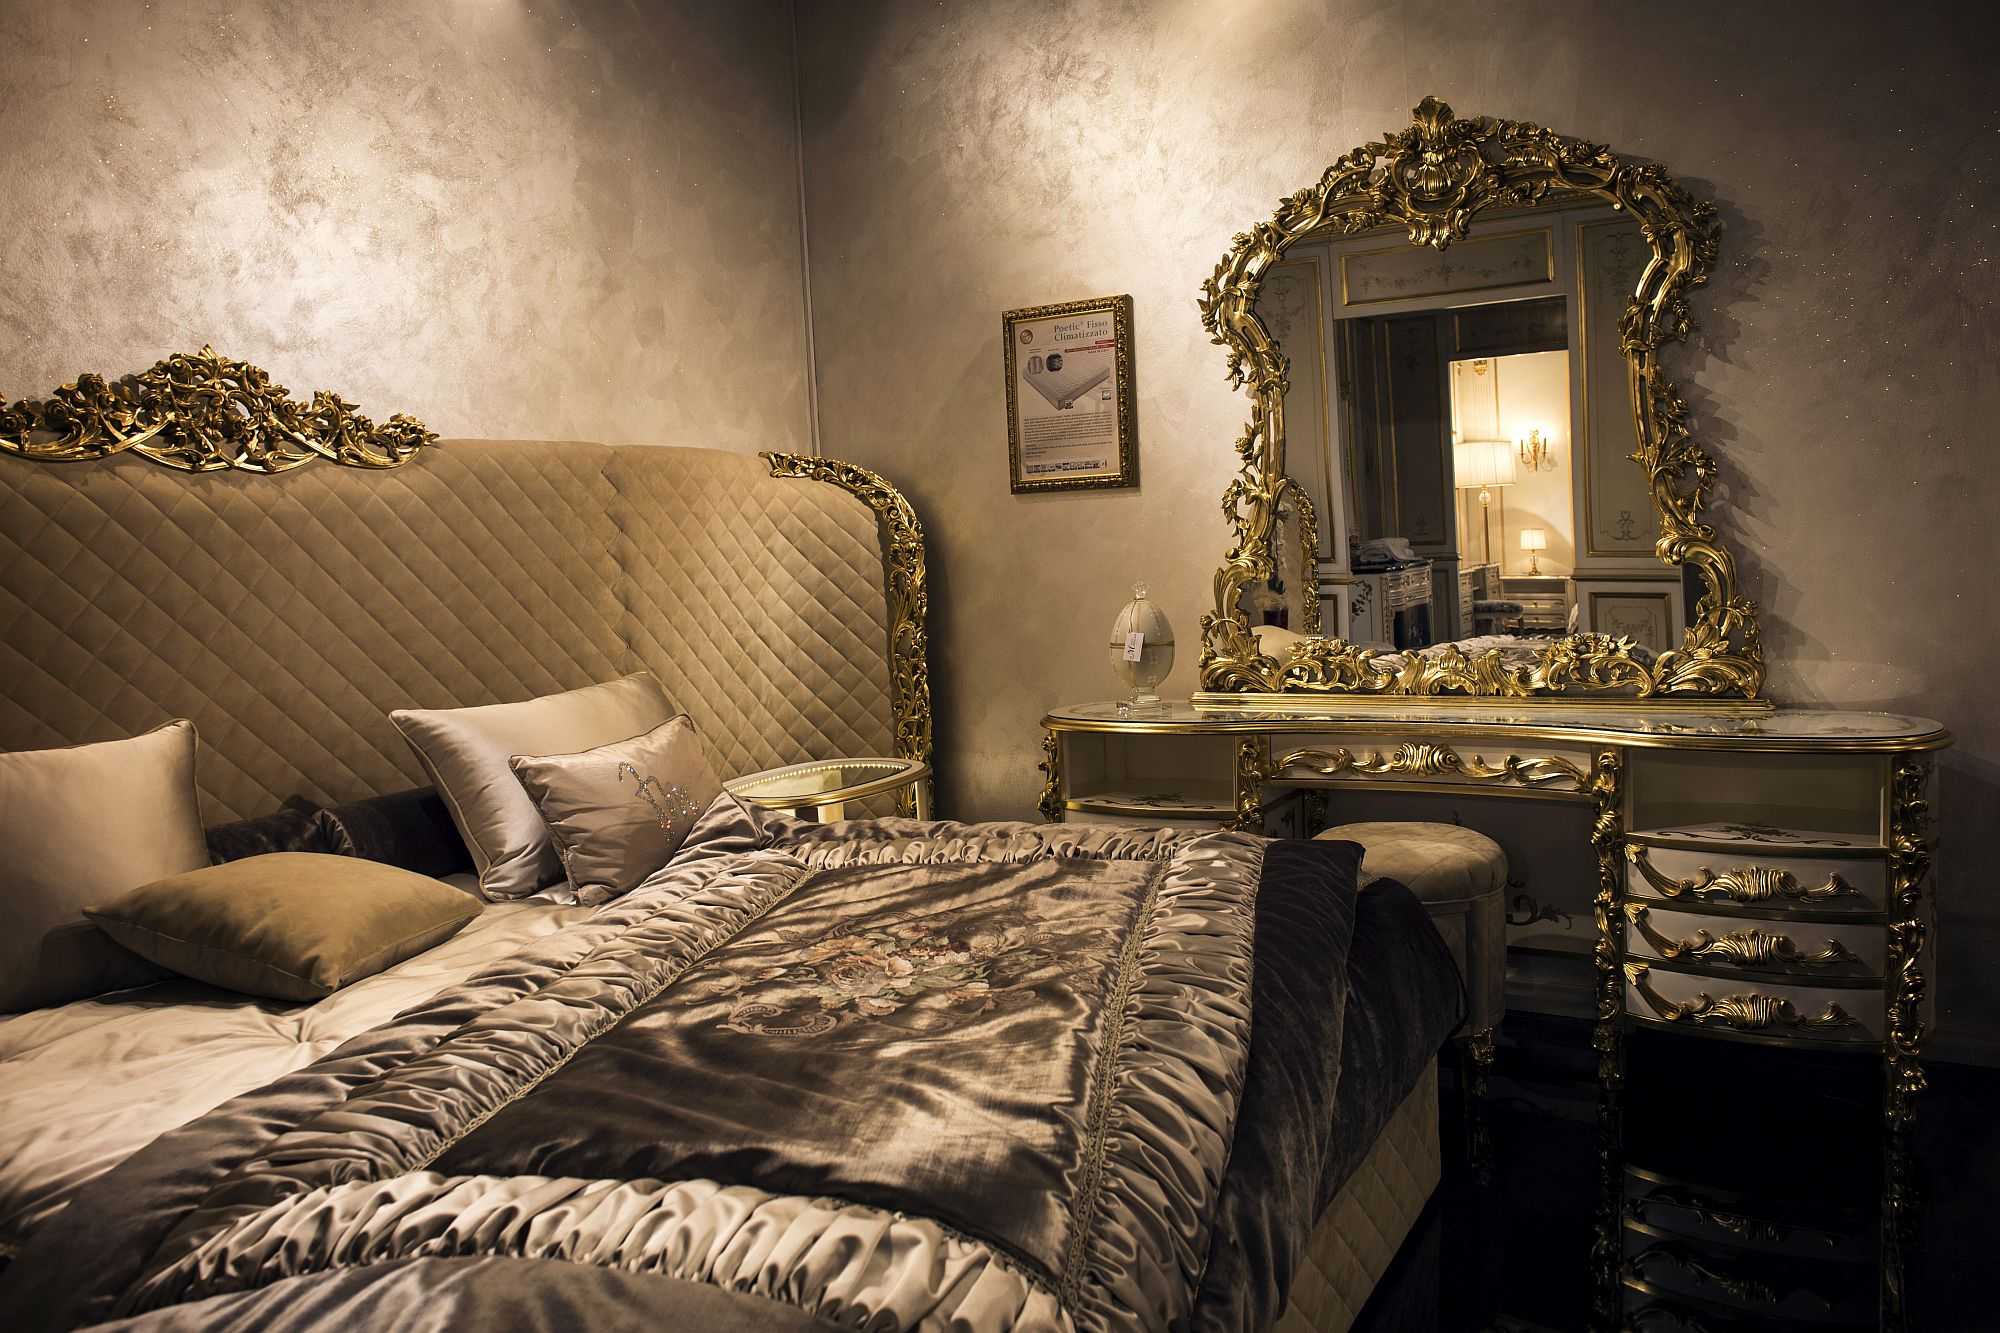 Luxurious bedroom in gold and plenty of textural contrast